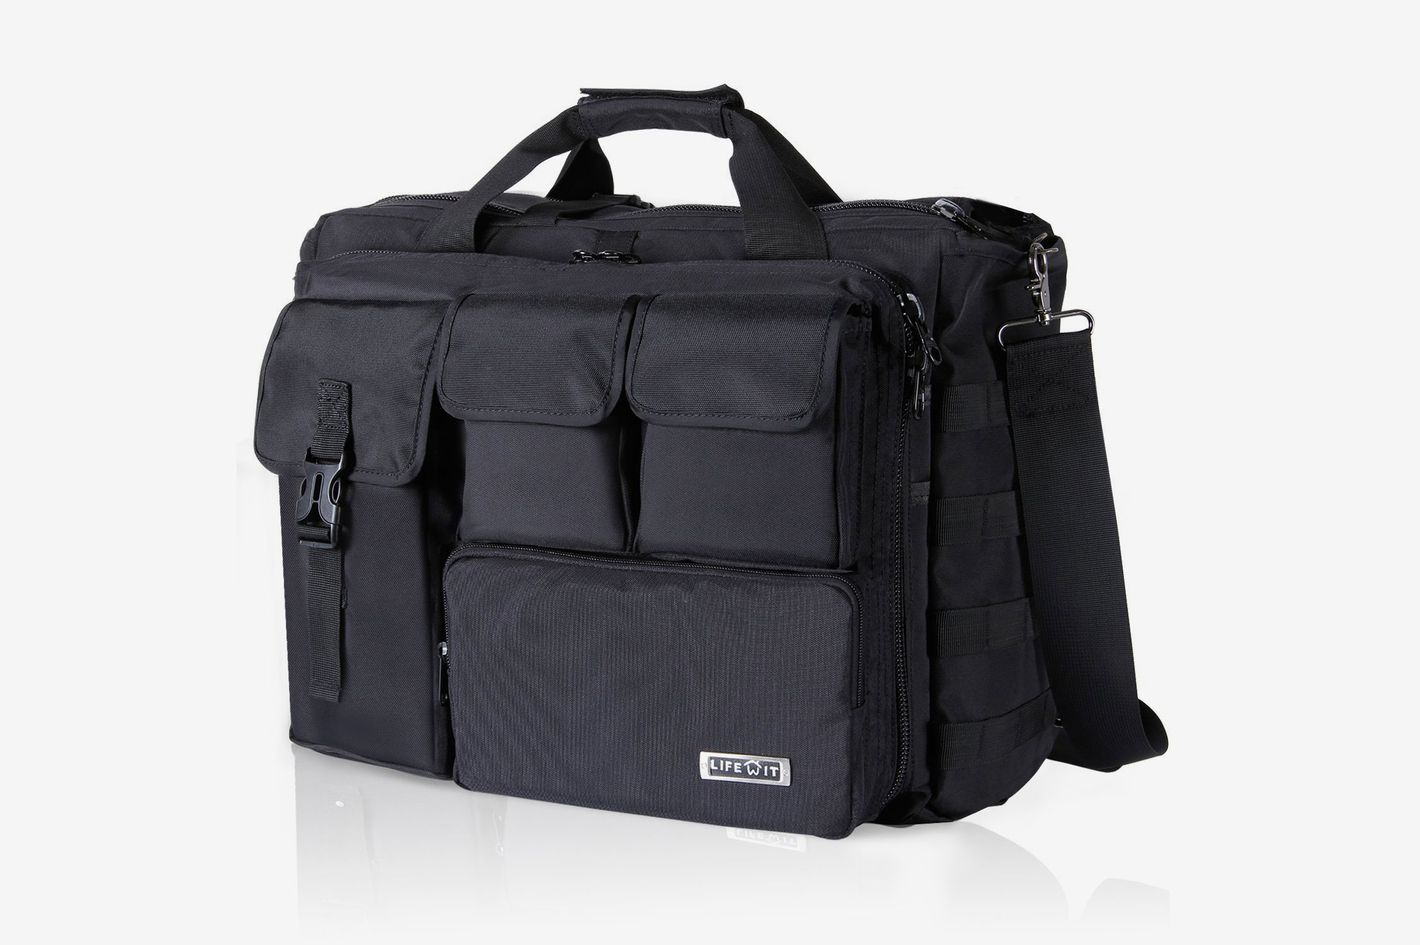 Lifewit Men's Military Laptop Messenger Bag